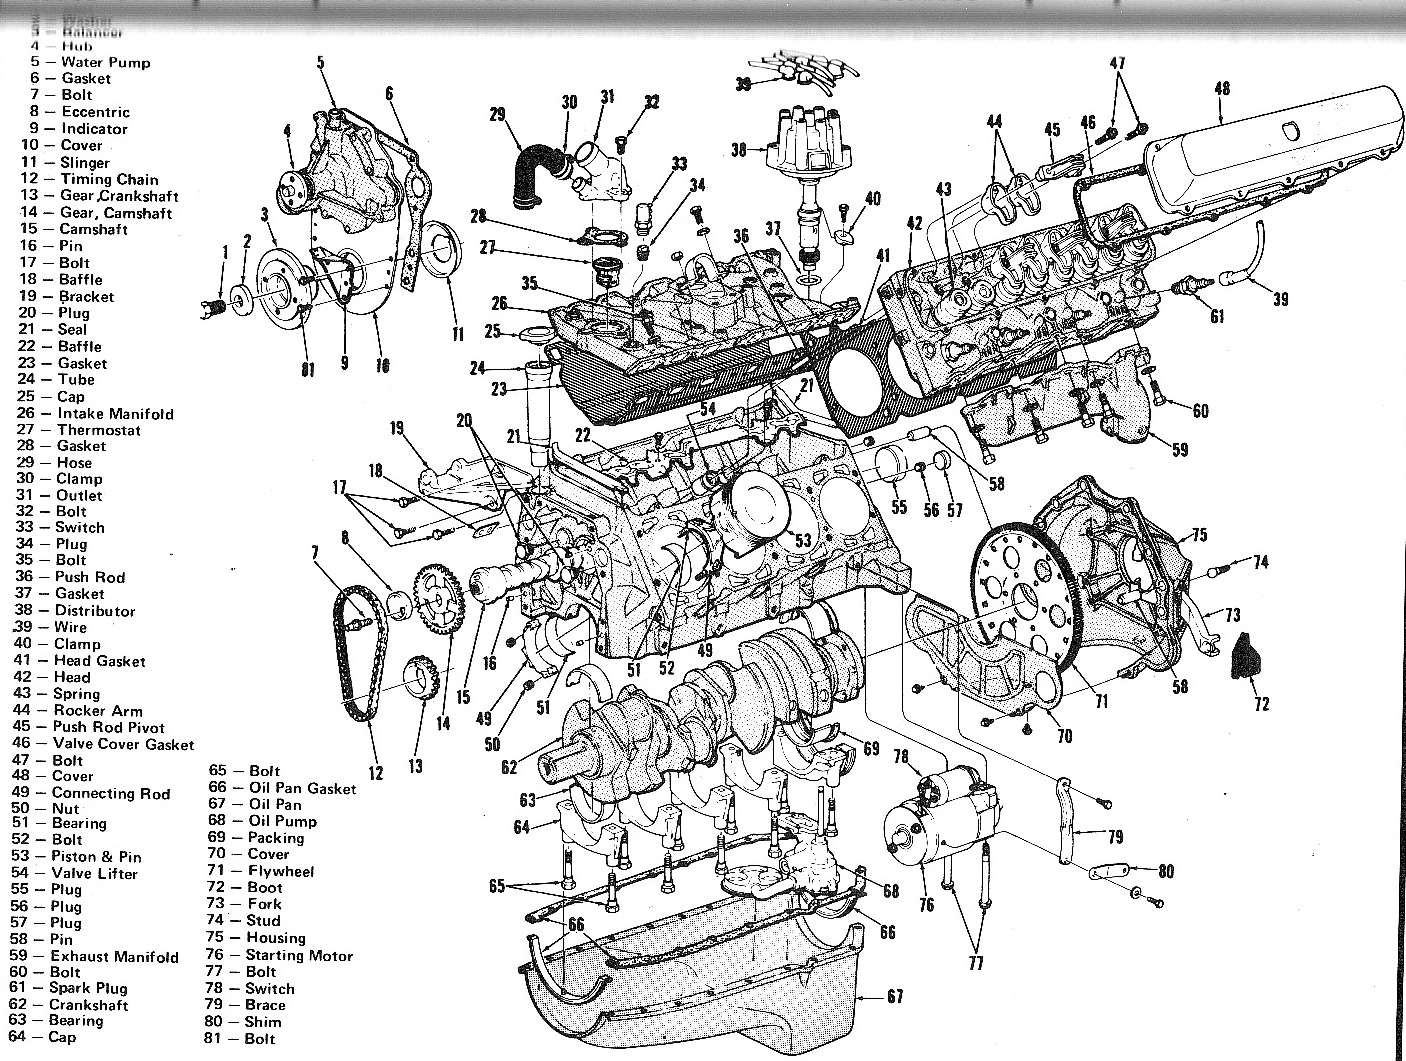 1971-1978 OLDSMOBILE TORONADO ENGINE DIAGRAM.jpg ...